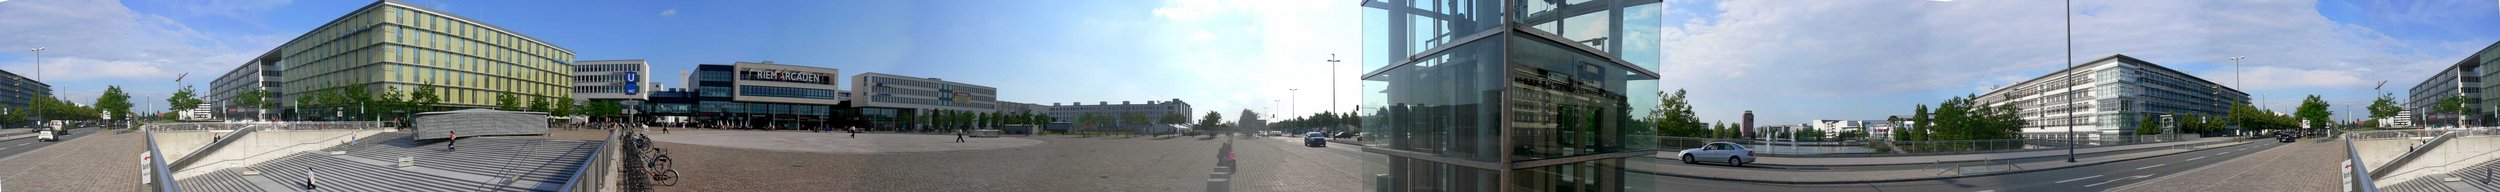 Willy-Brandt-Platz (U-Bahnstation Messestadt West ) mit Riem Arcaden und Messesee